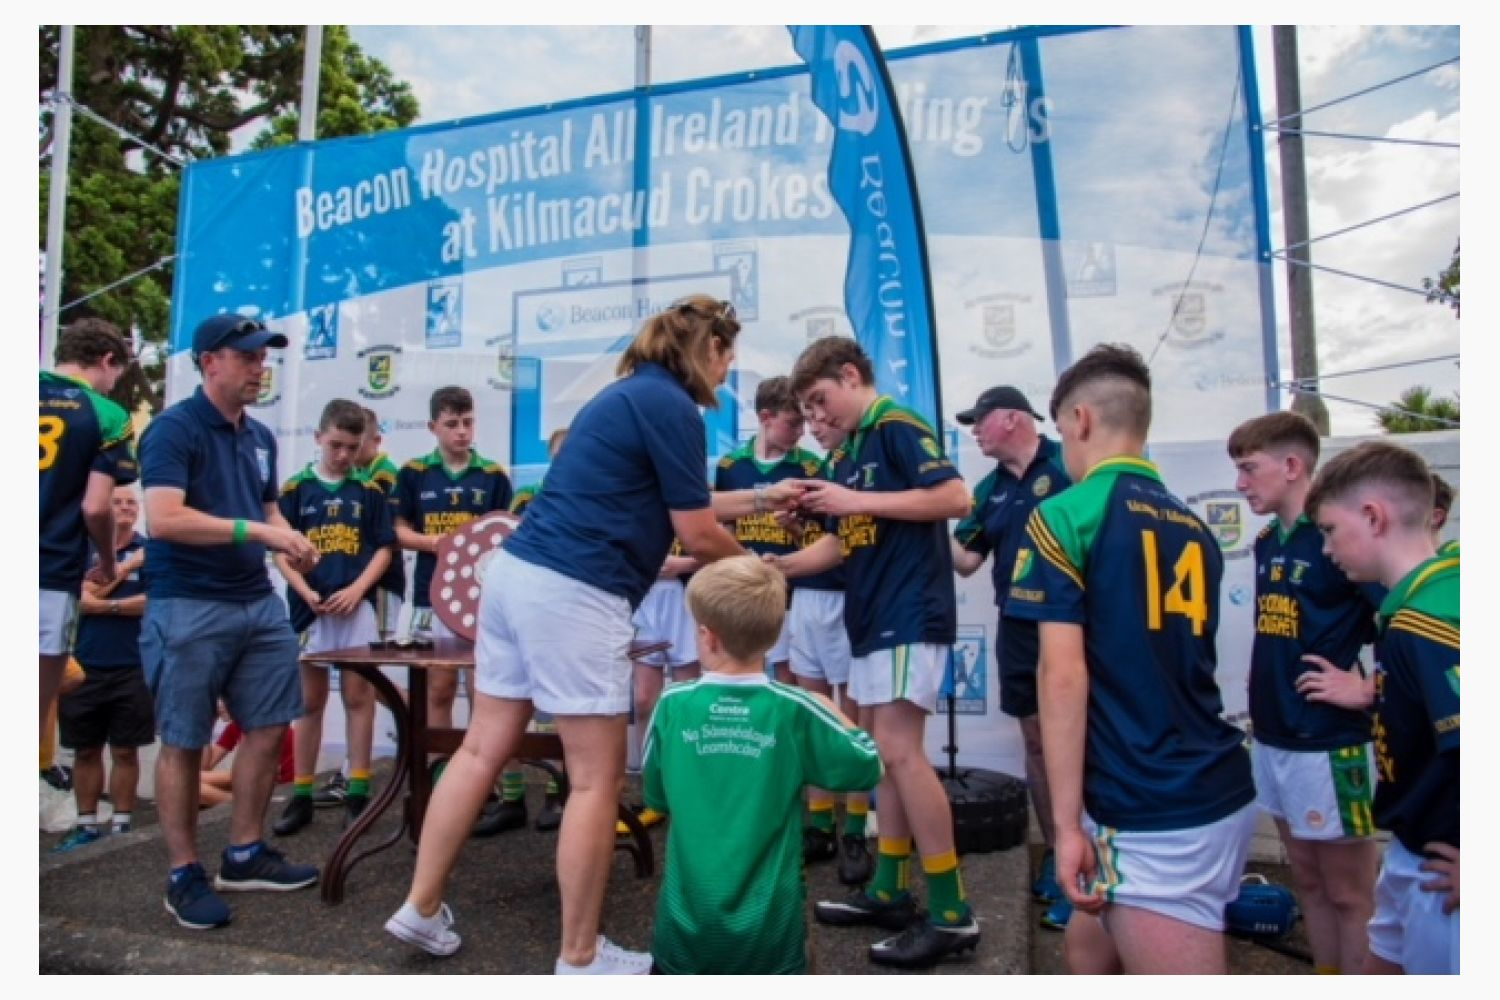 All Ireland Hurling 7s Under 13 Competition News 2018